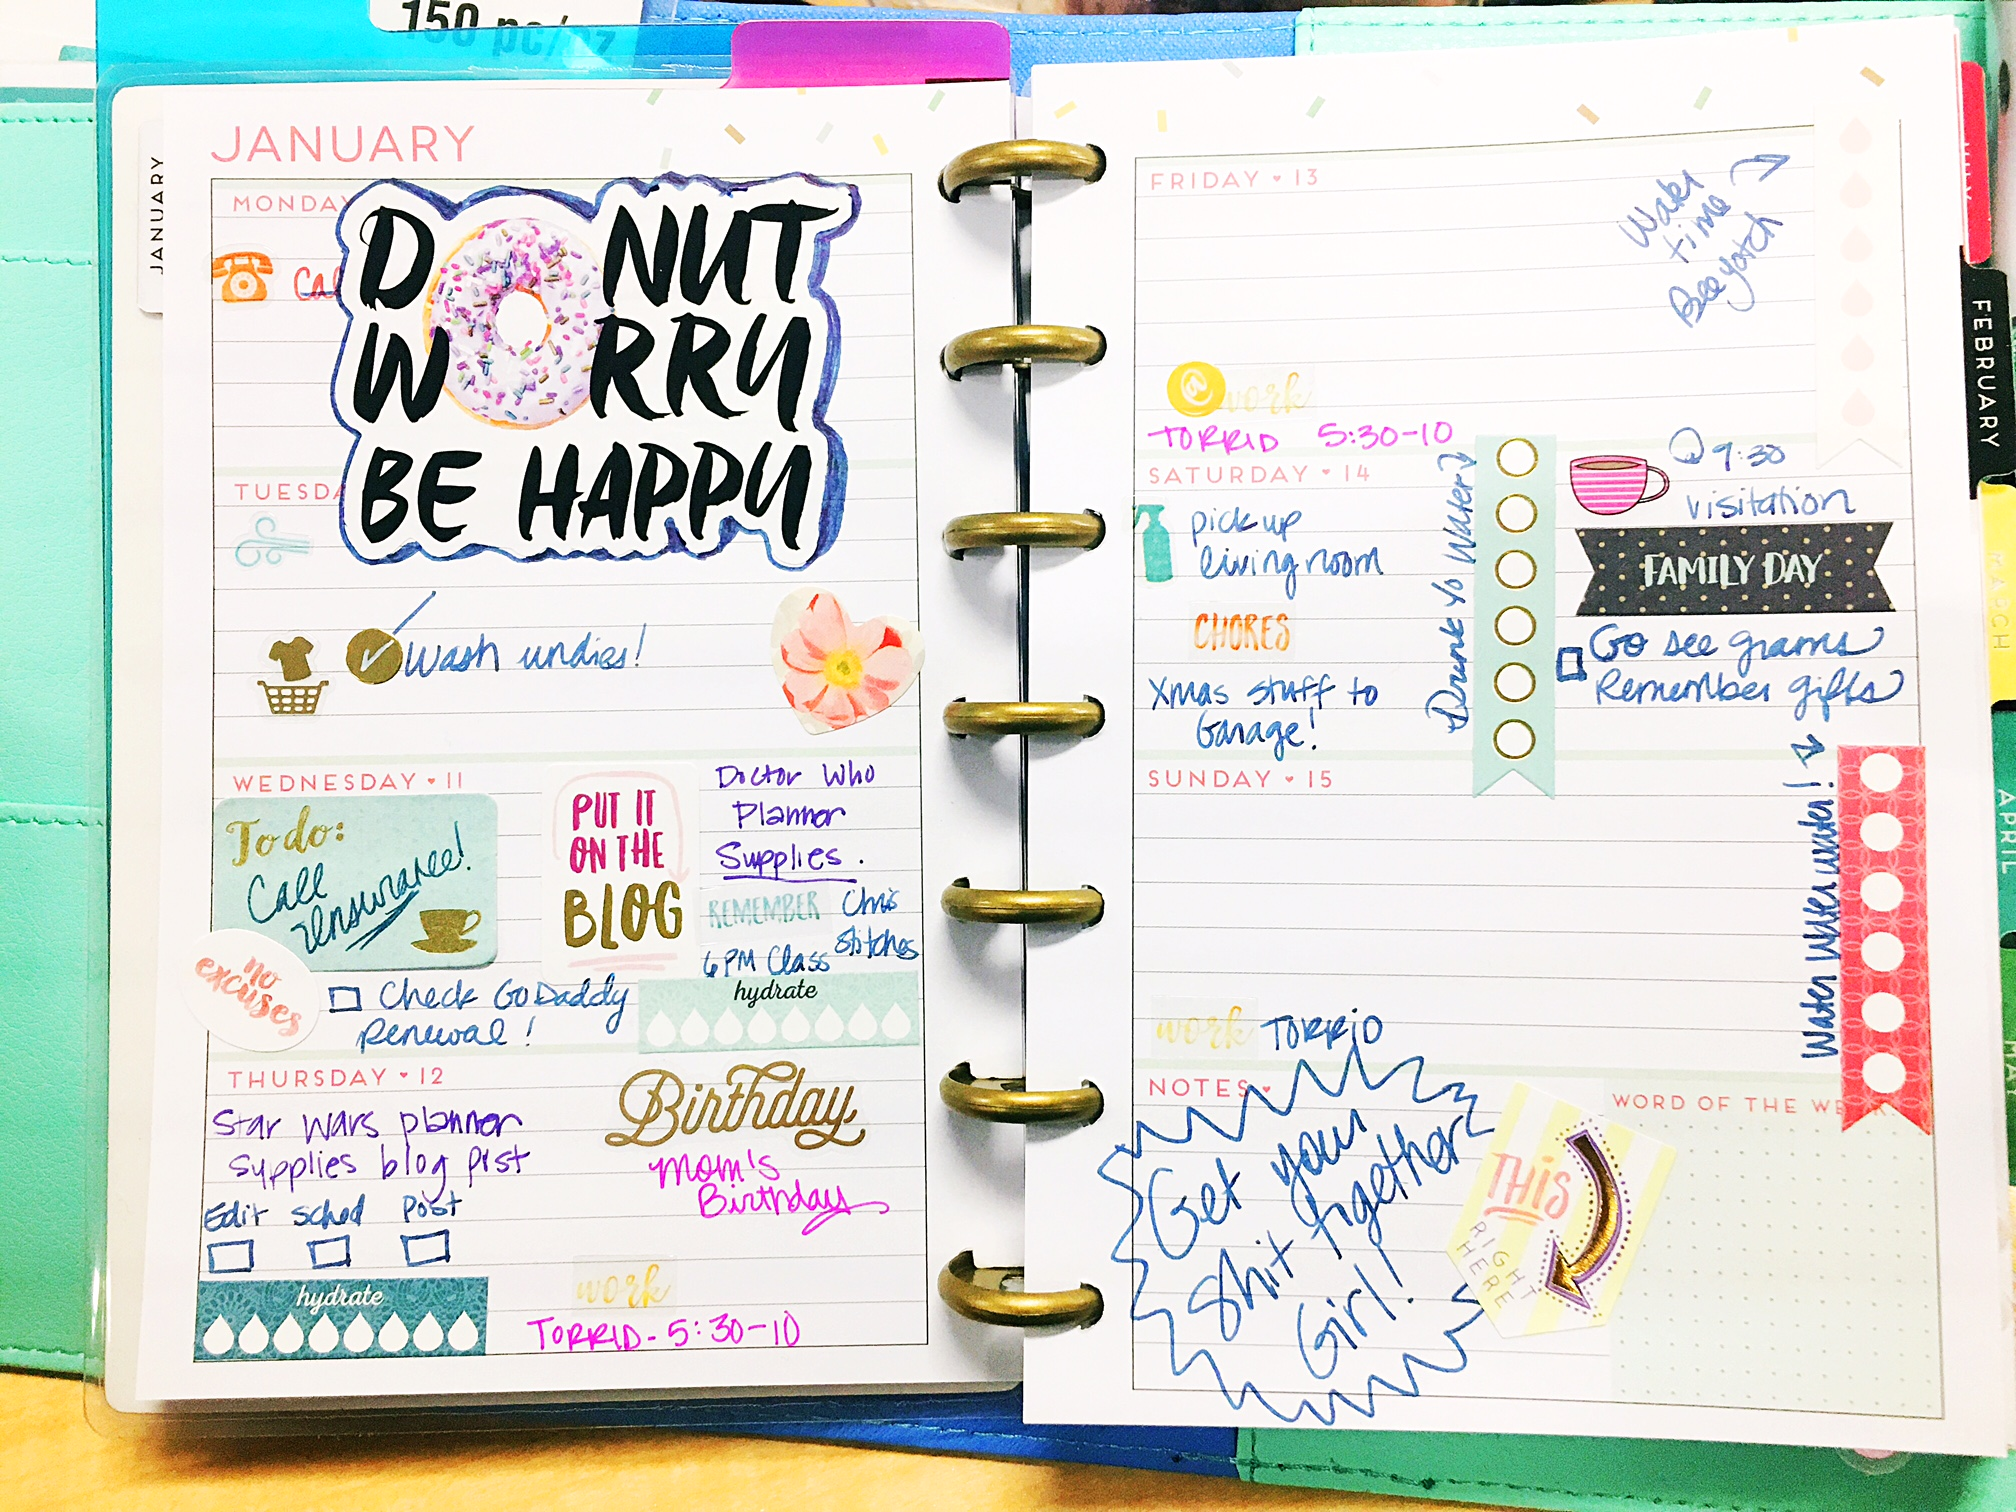 Angie's Planner Spread